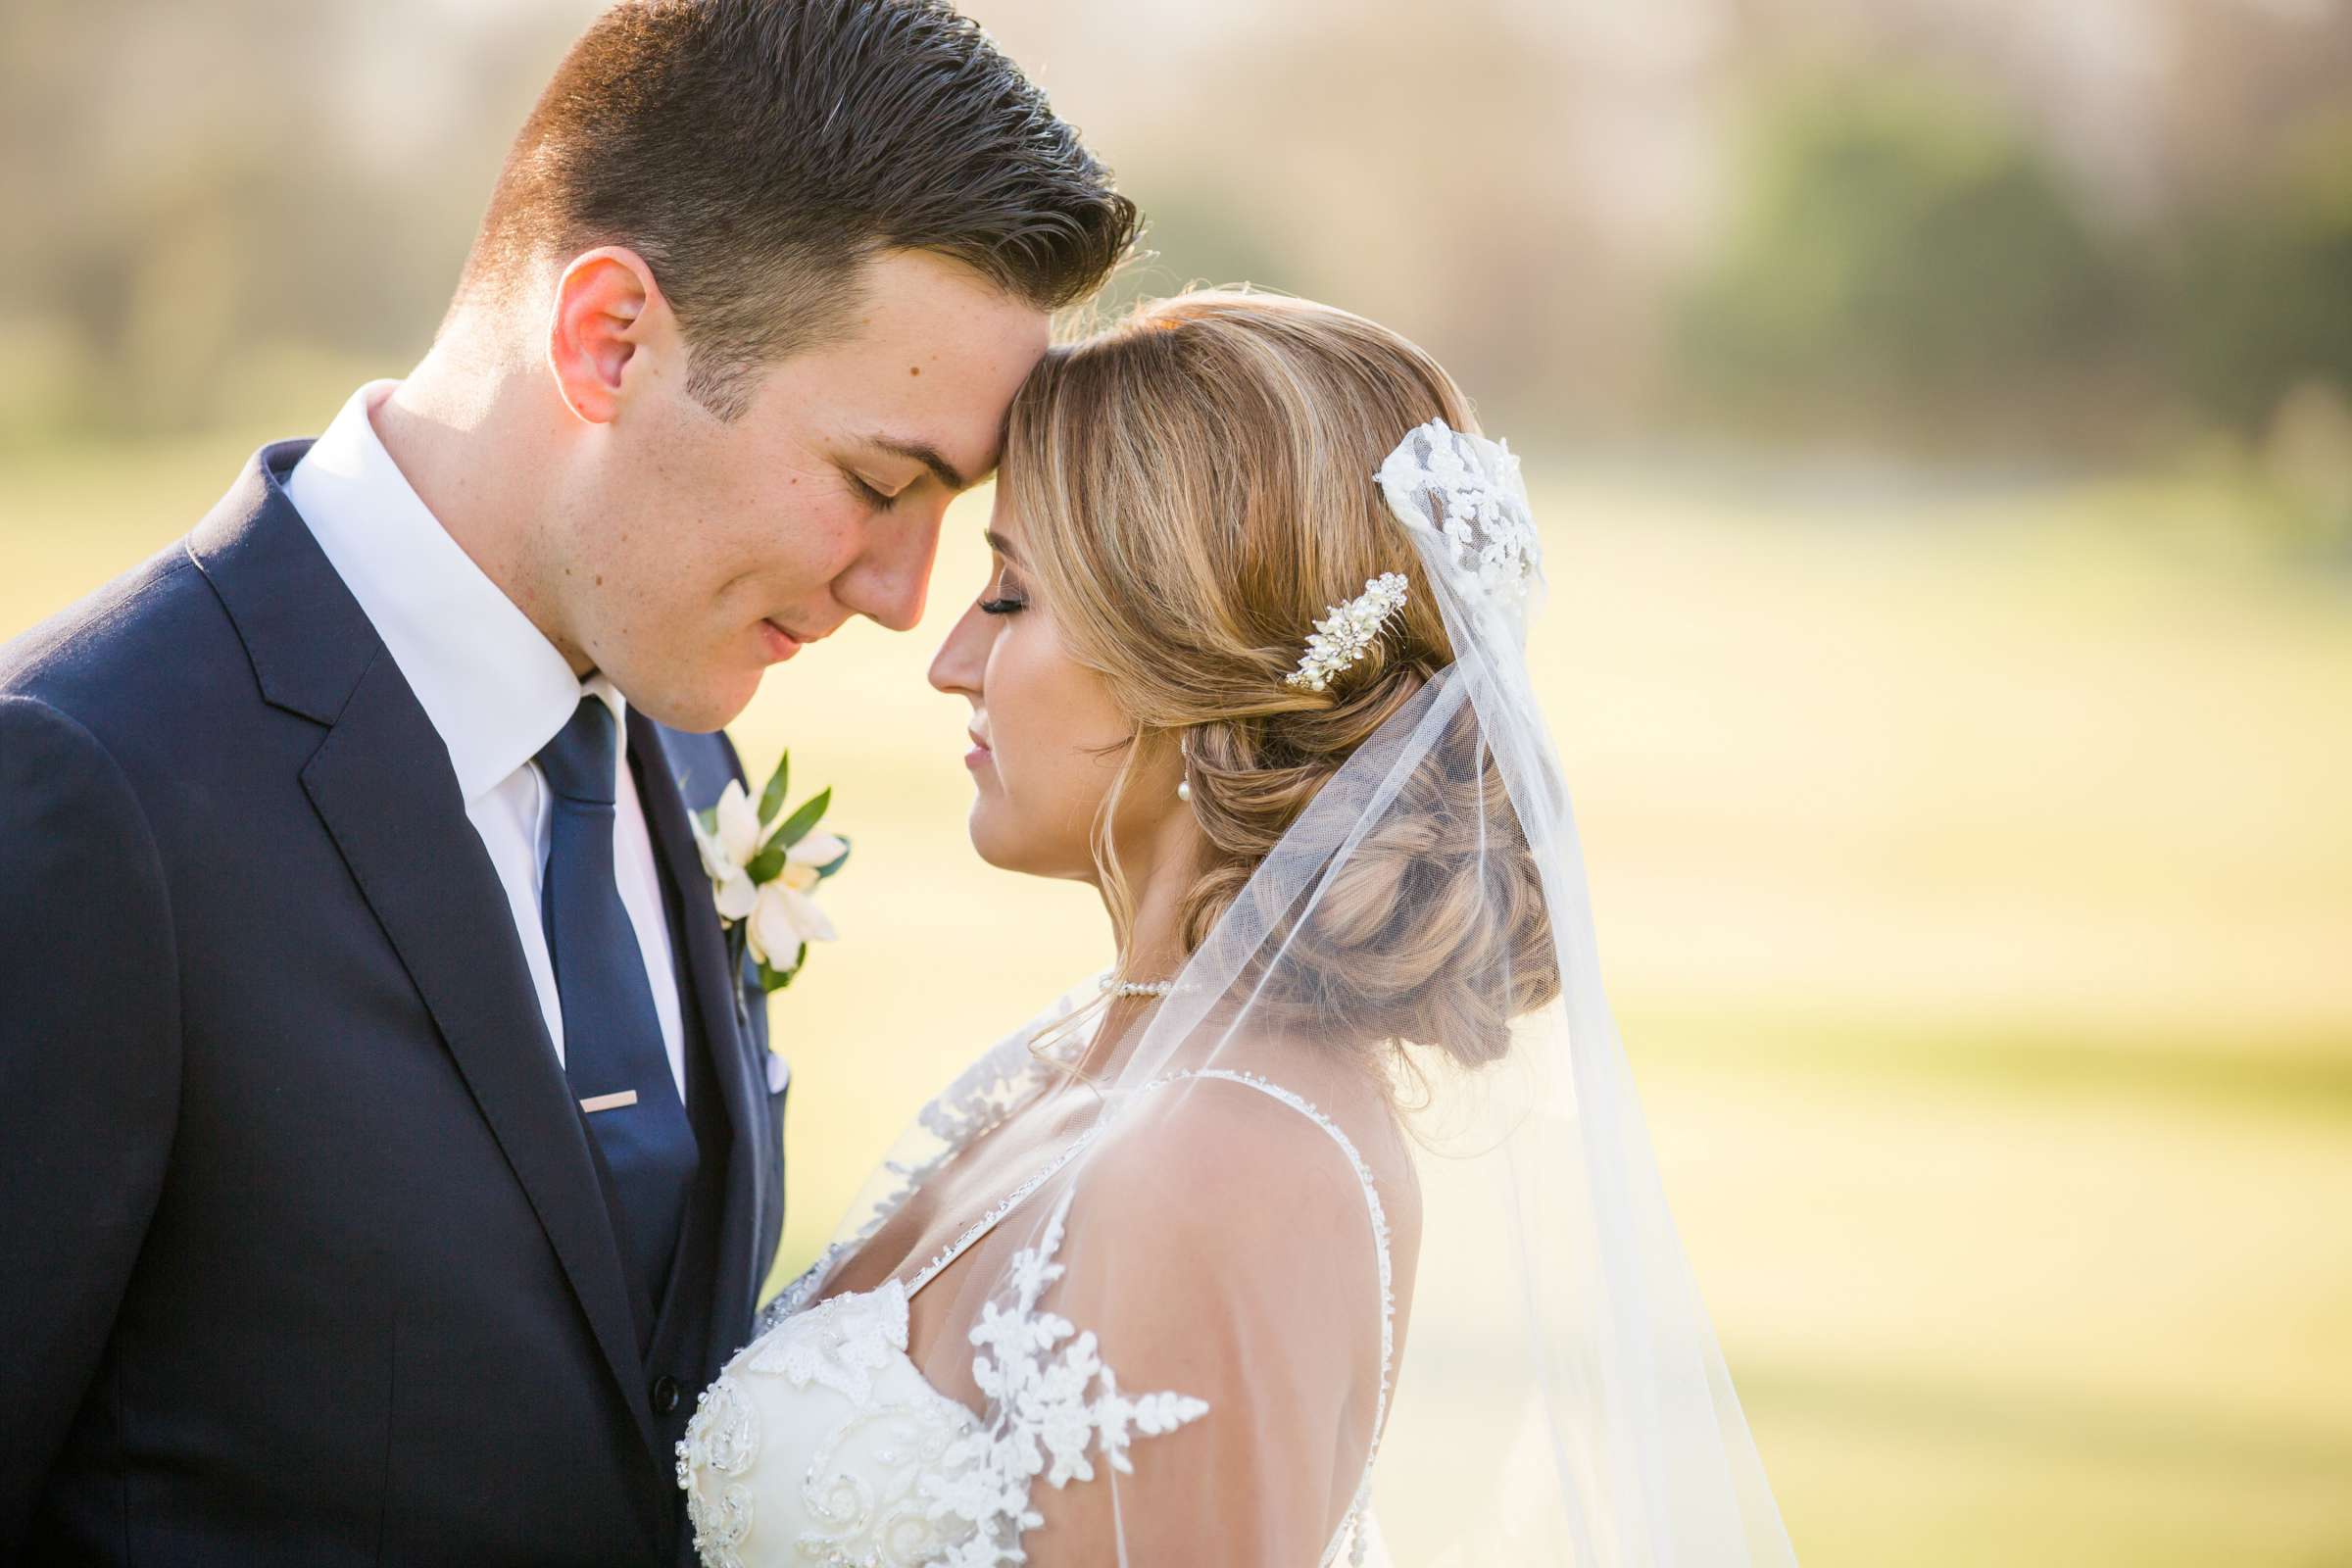 Fairbanks Ranch Country Club Wedding coordinated by Monarch Weddings, Gabriella and Kyle Wedding Photo #113 by True Photography